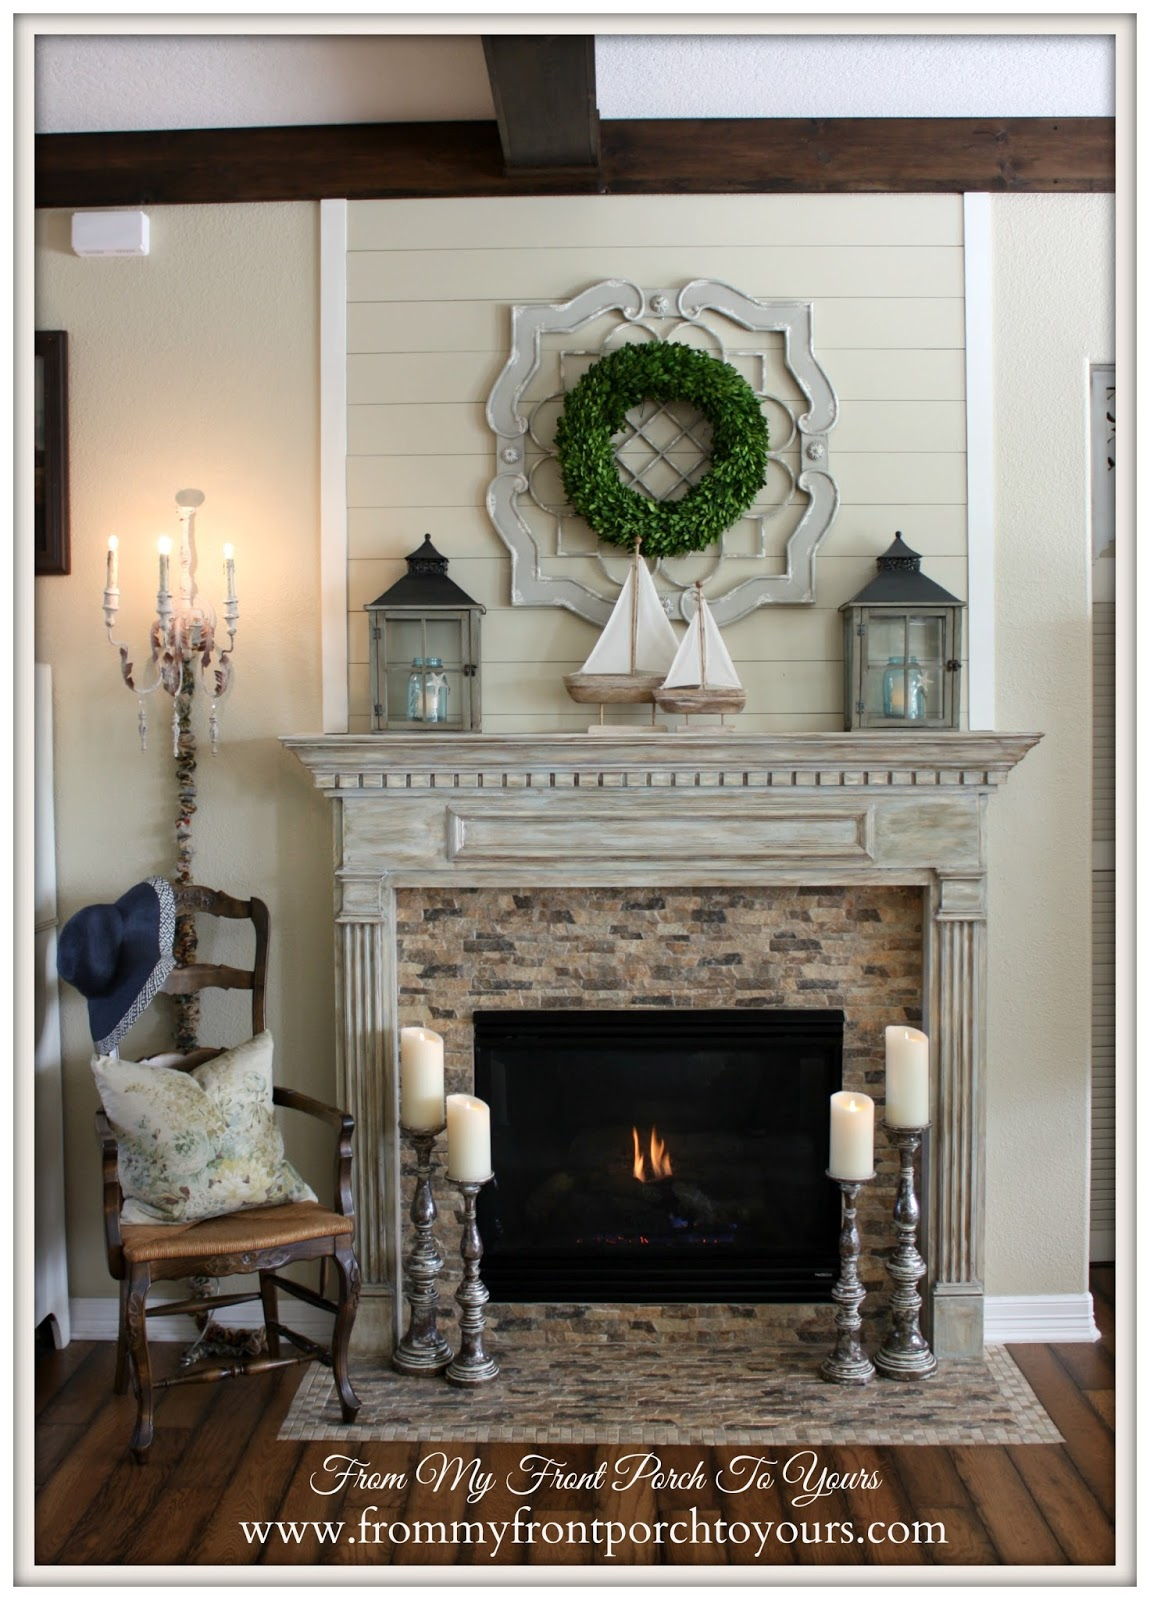 From My Front Porch To Yours: Simple Nautical Summer Mantel